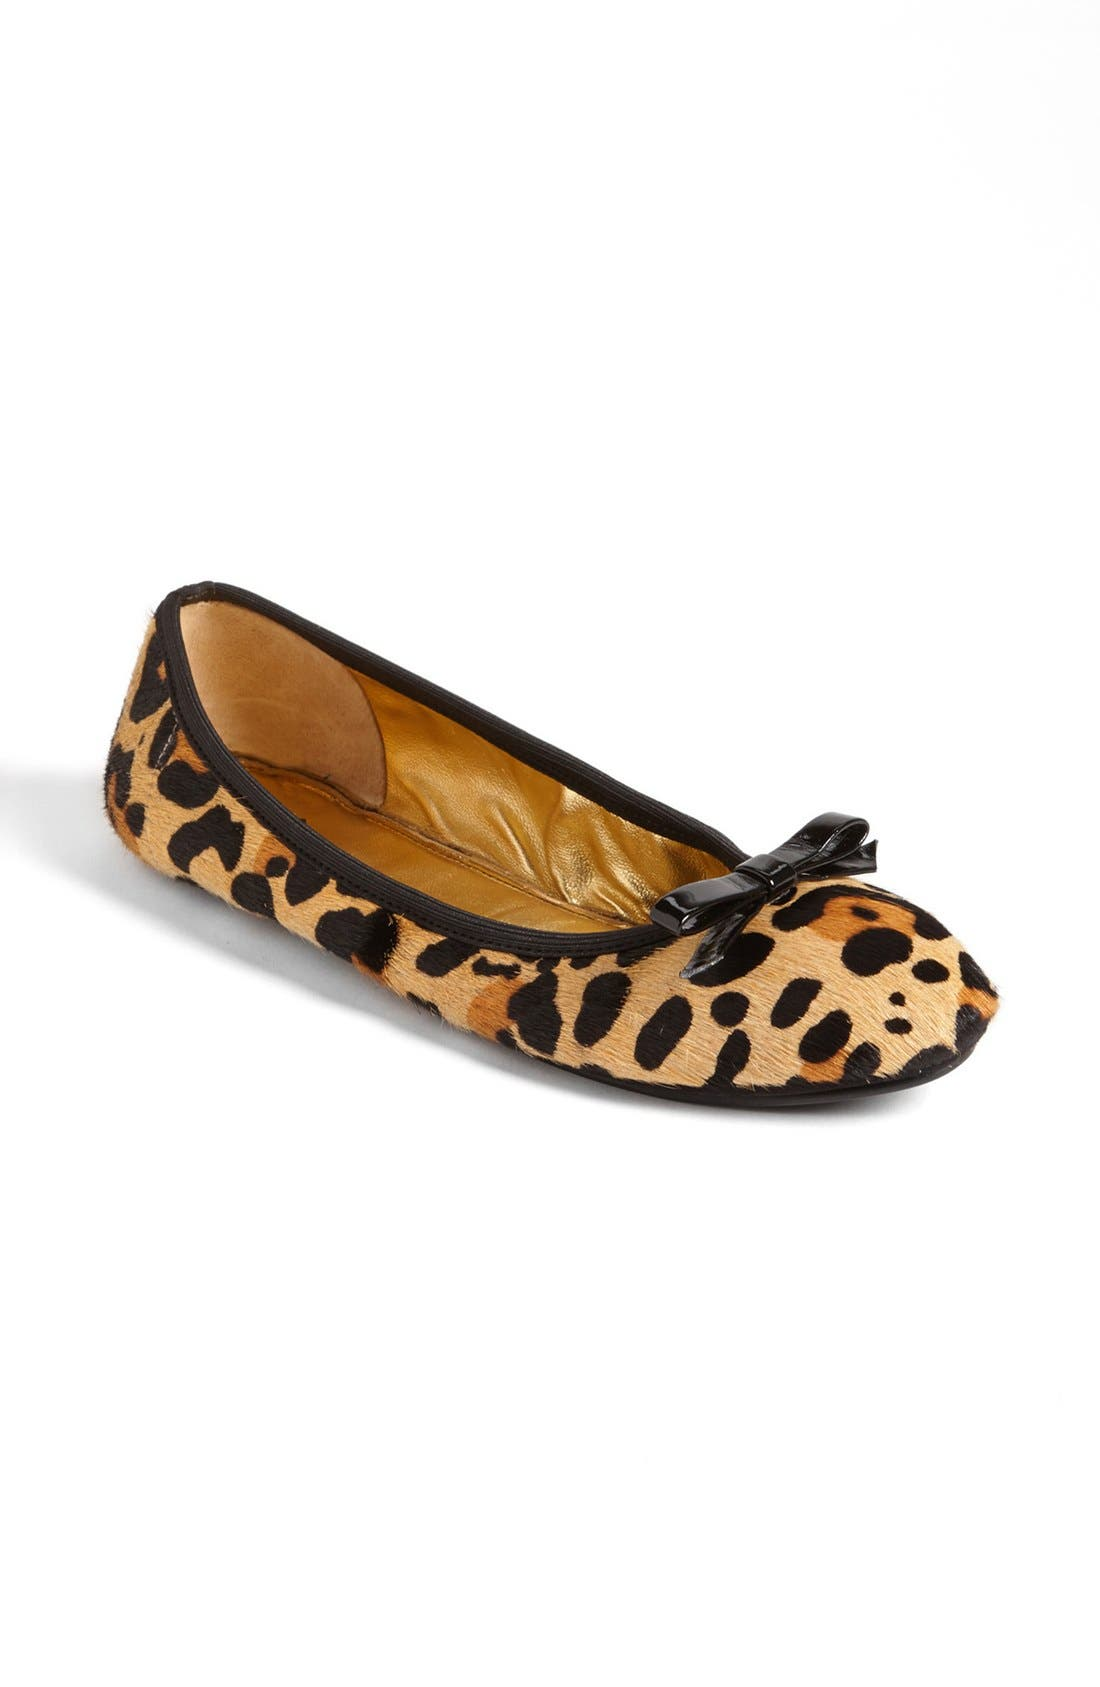 Main Image - kate spade new york 'catcher' flat